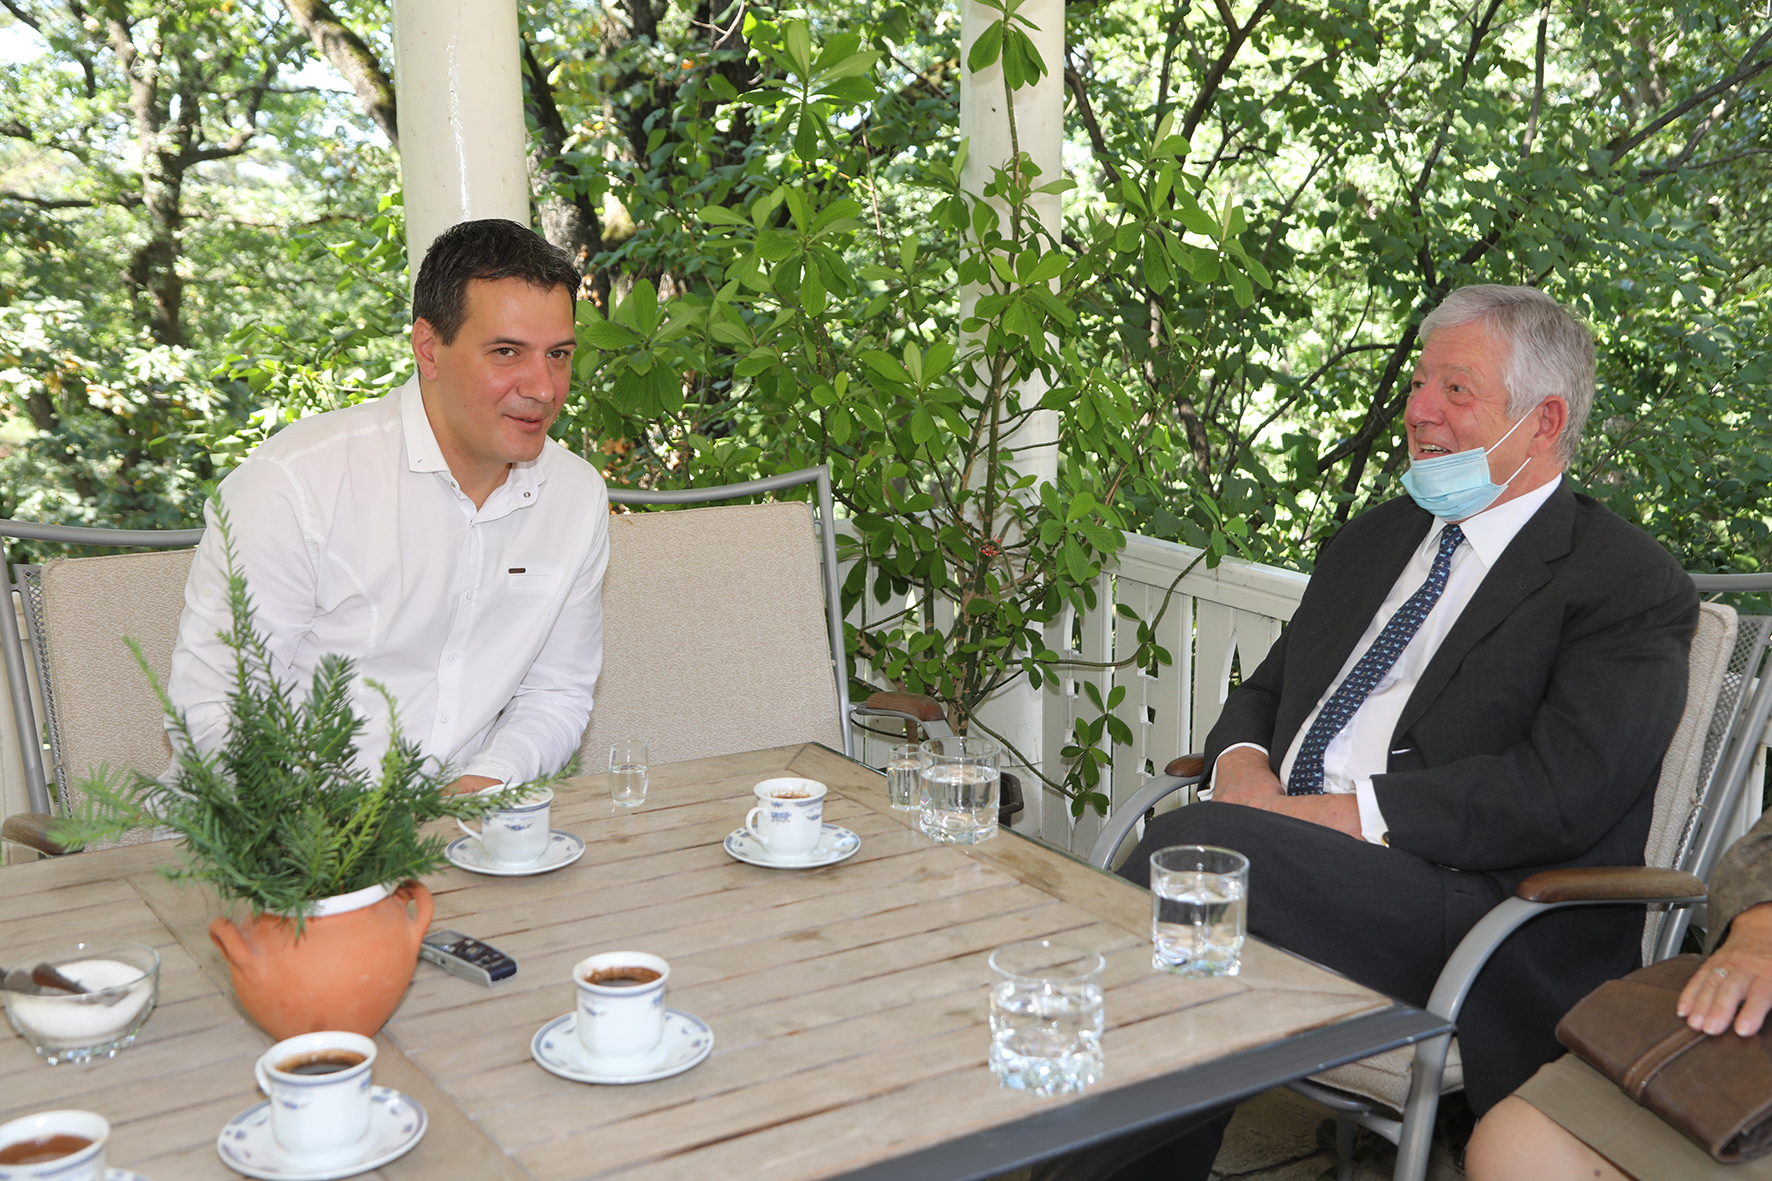 HRH Crown Prince Alexander with the President of the municipality of Topola, Mr. Igor Petrovic